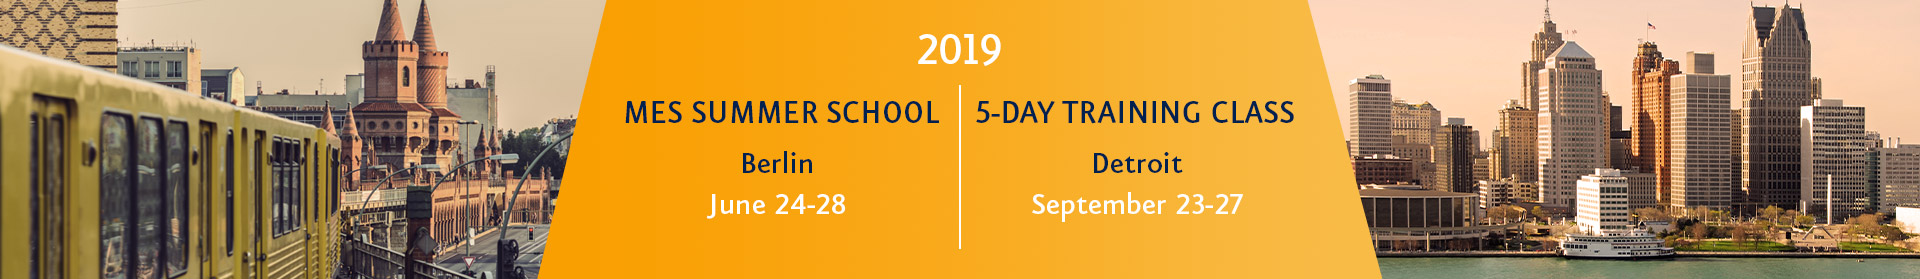 MES Summer School 2019/5-Day Training Class 2019